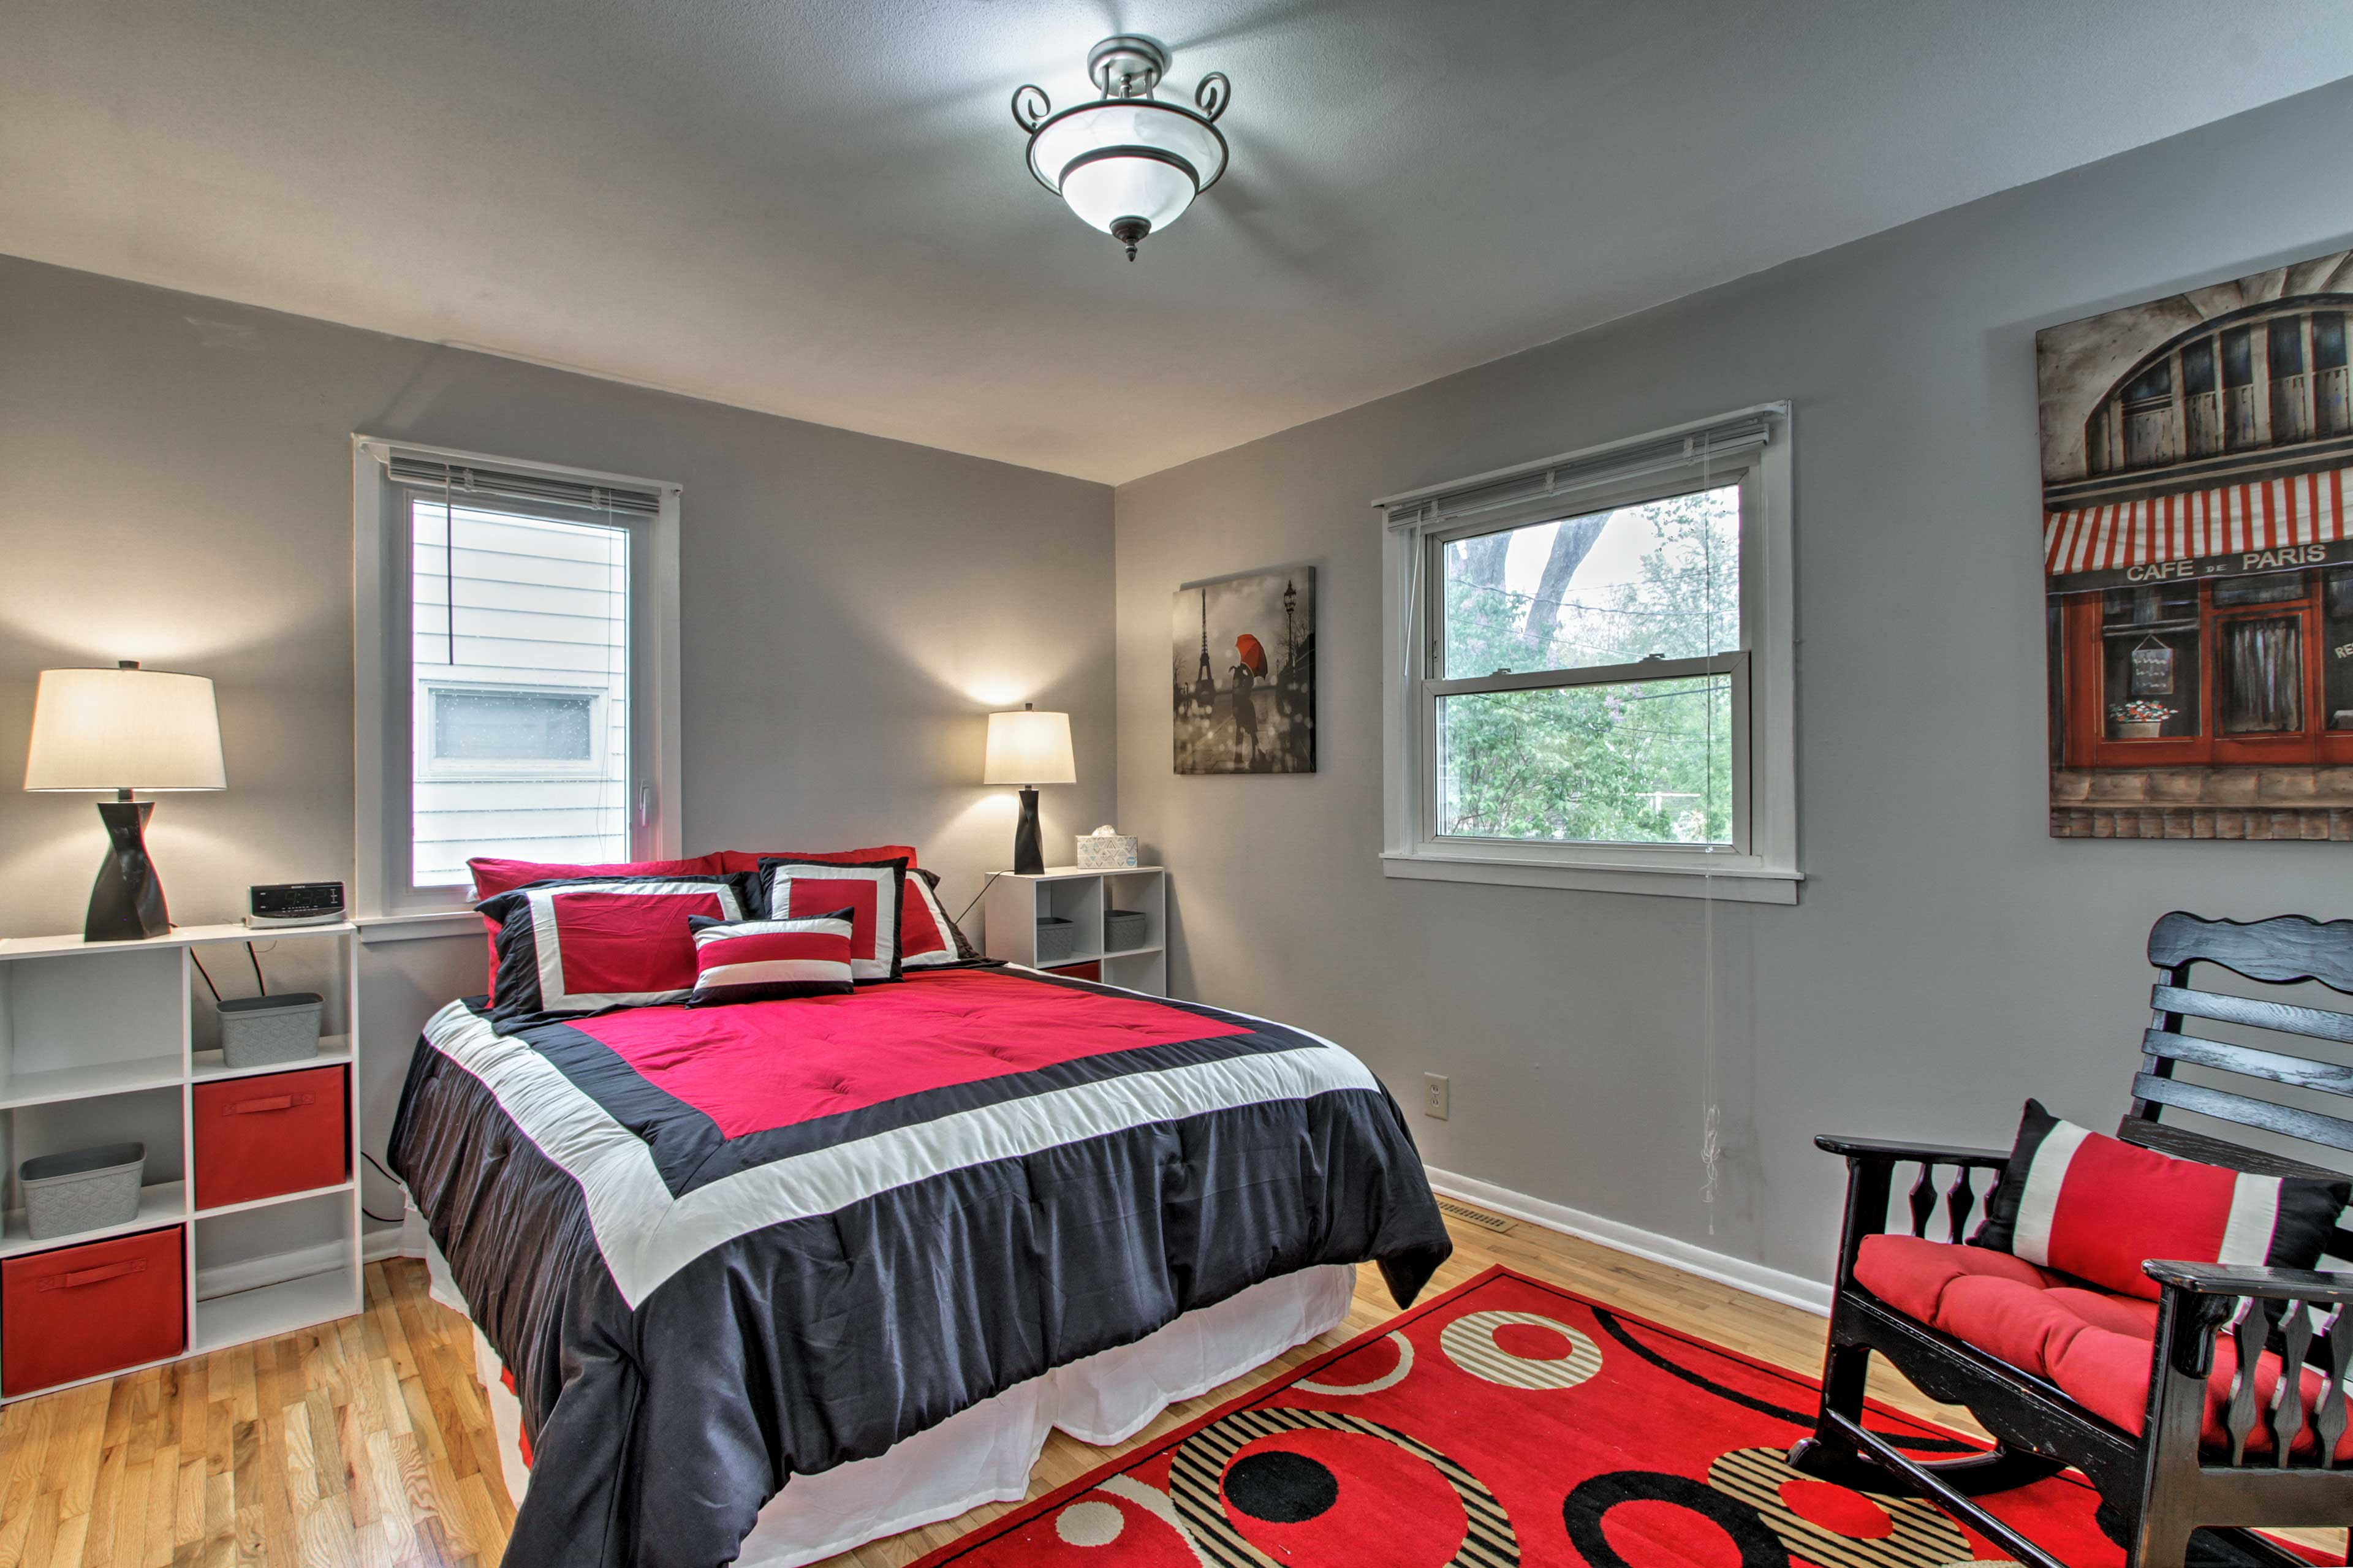 Two guests can share the comfort of this queen bed.